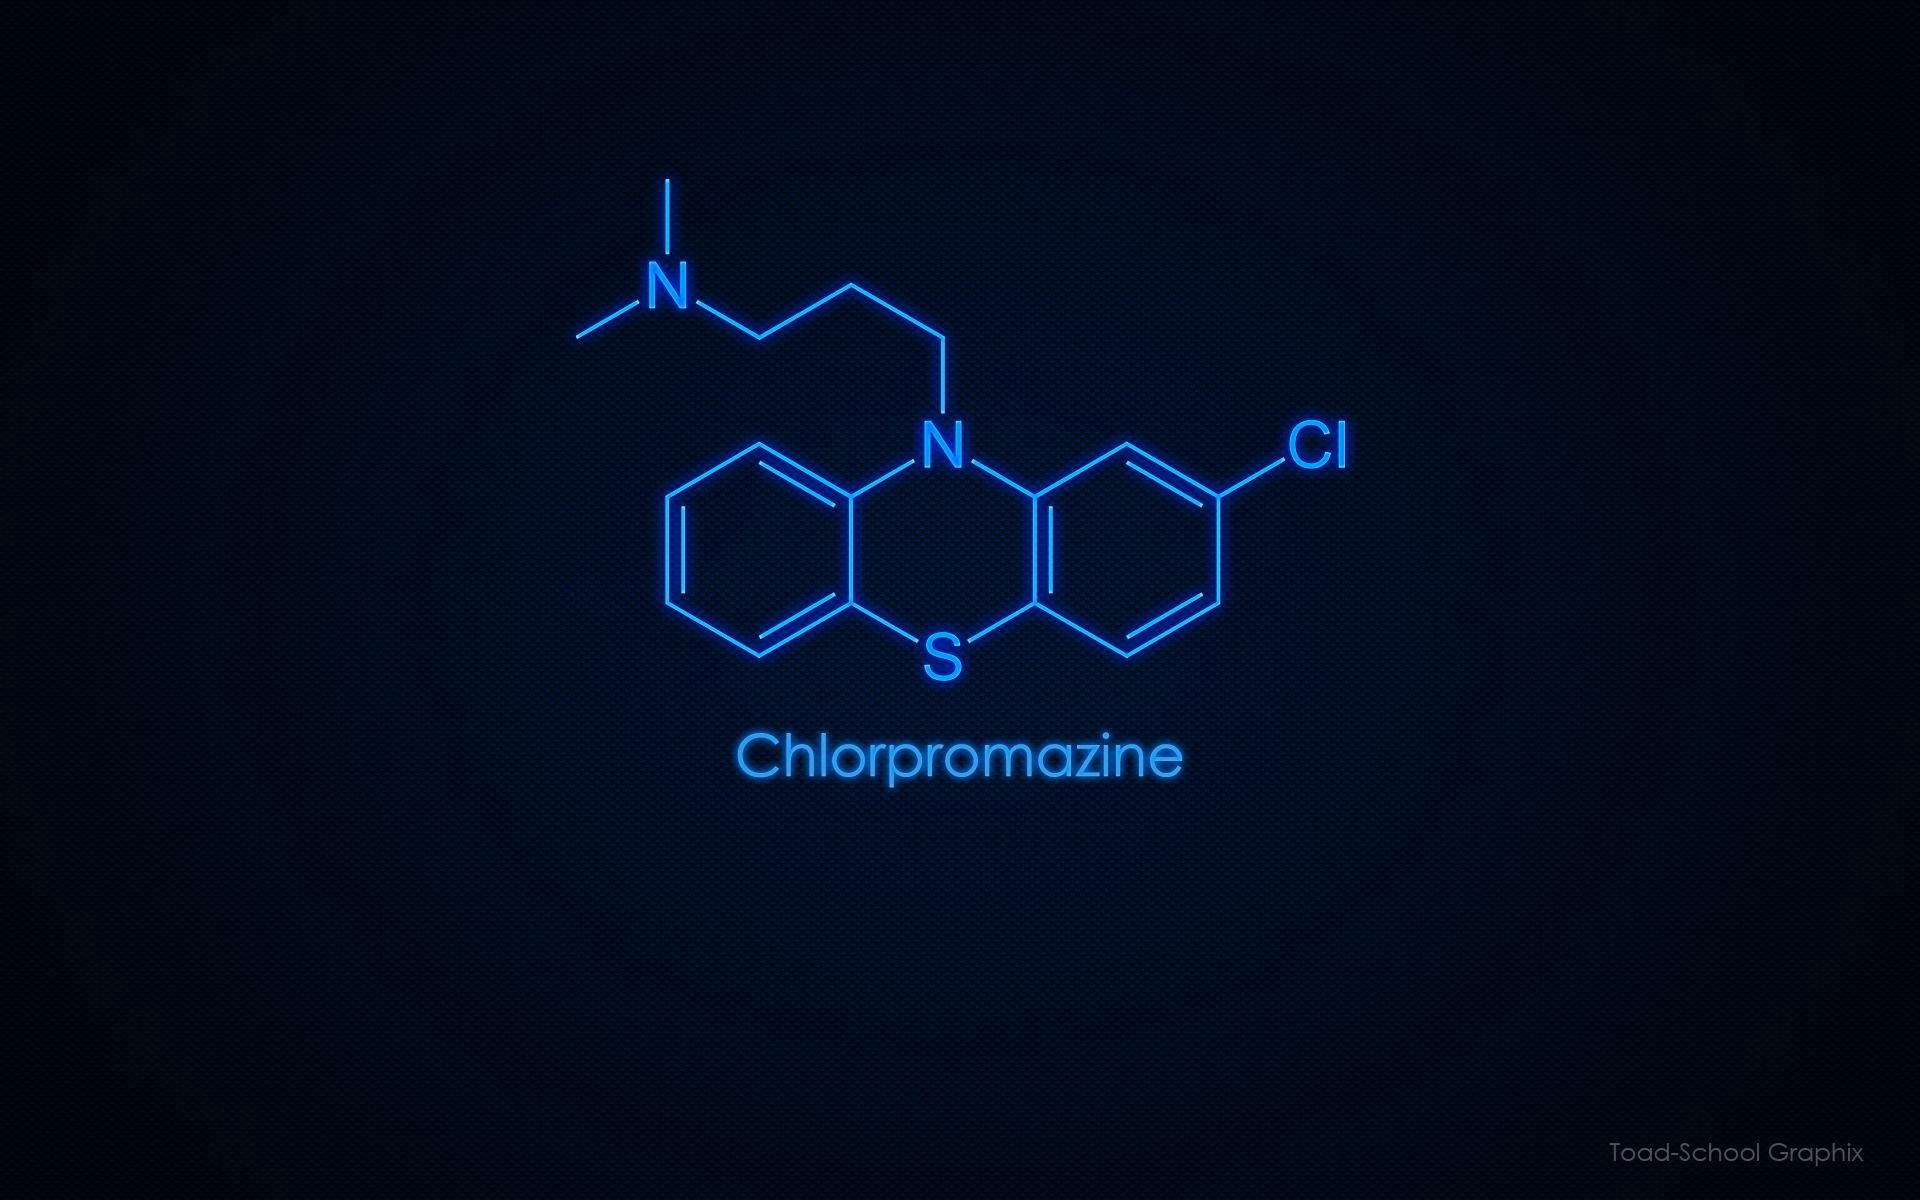 hd chemistry wallpapers 61 images